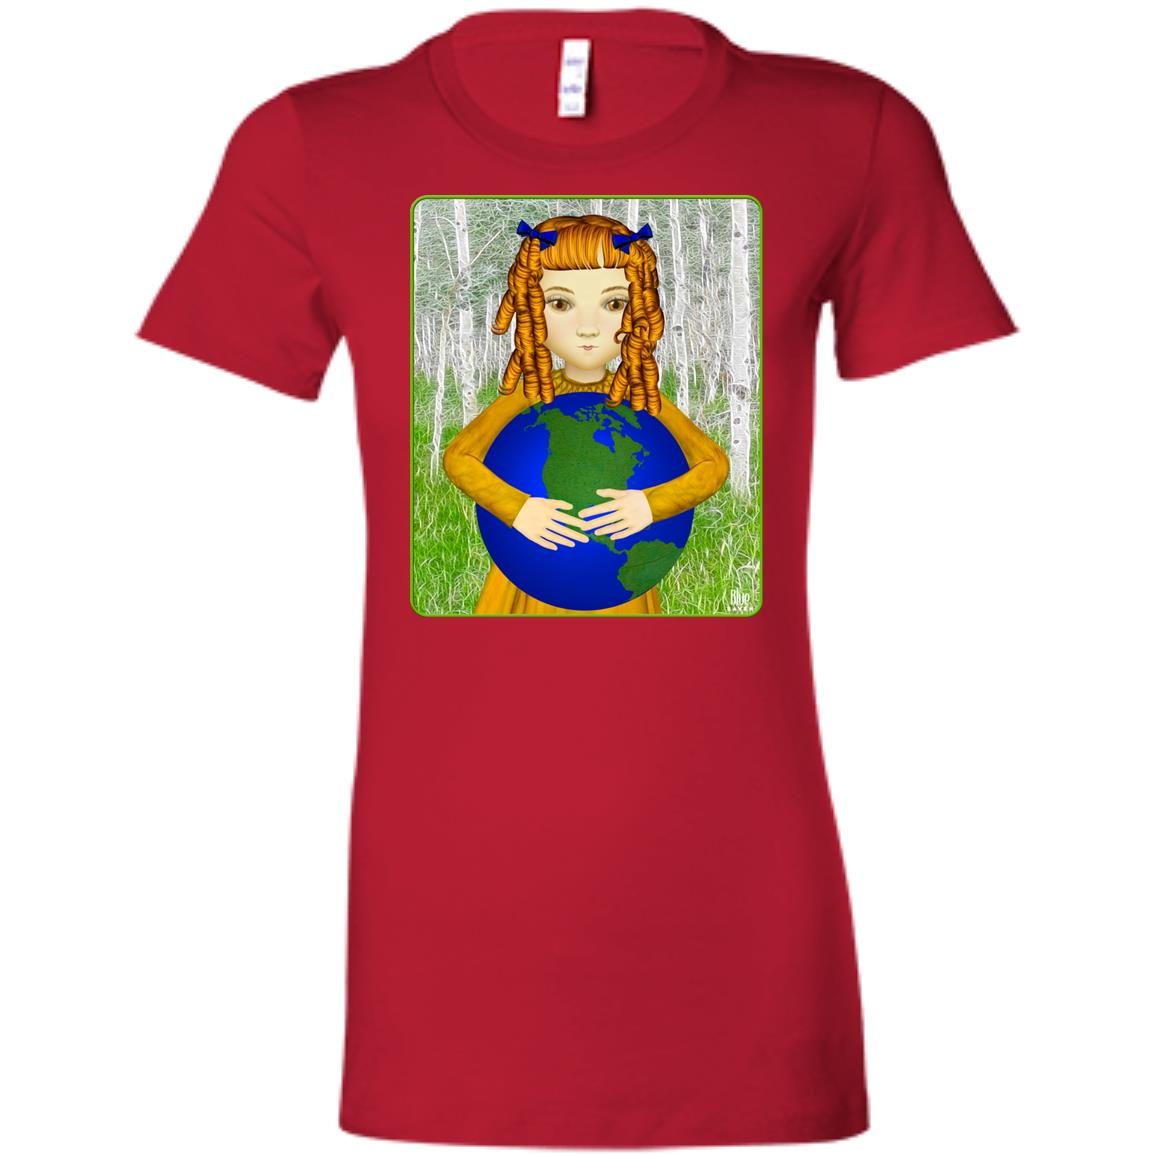 Save My World - Women's Fitted T-Shirt